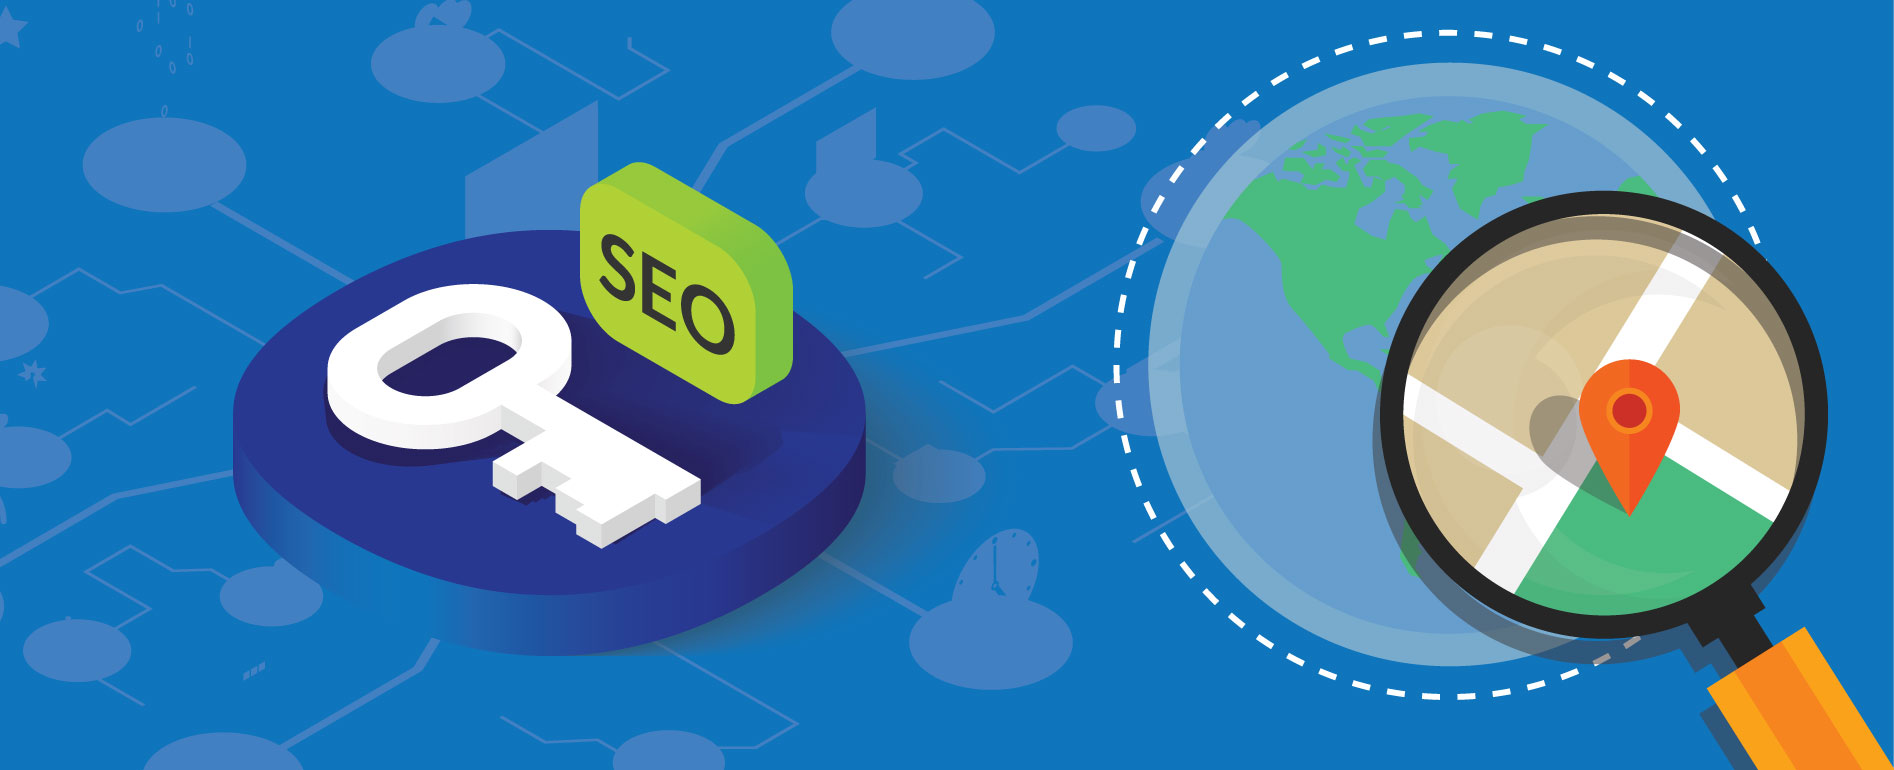 Local SEO Audit Keywords